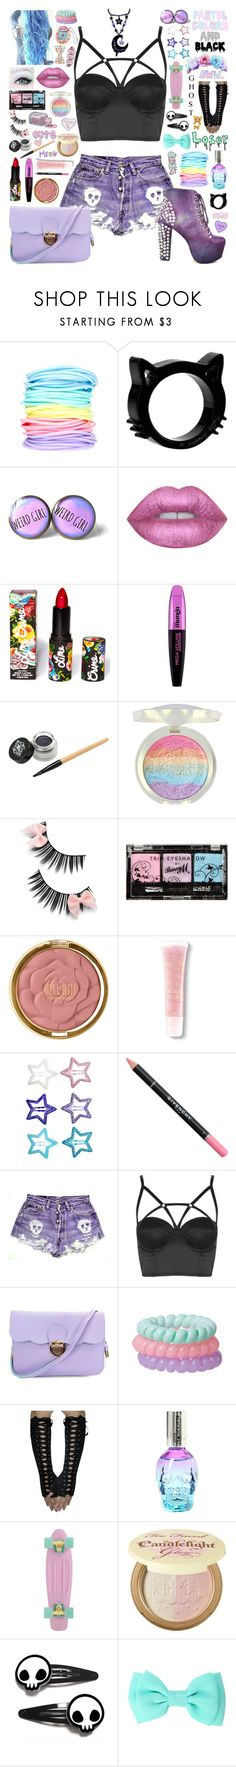 """How To Be A Pastel Goth 3"" by aspiretoinspire22 ❤ liked on Polyvore featuring ASOS, Lime Crime, L'Oréal Paris, River Island, Milani, Lancôme, H&M, Givenchy, Topshop and Too Faced Cosmetics"